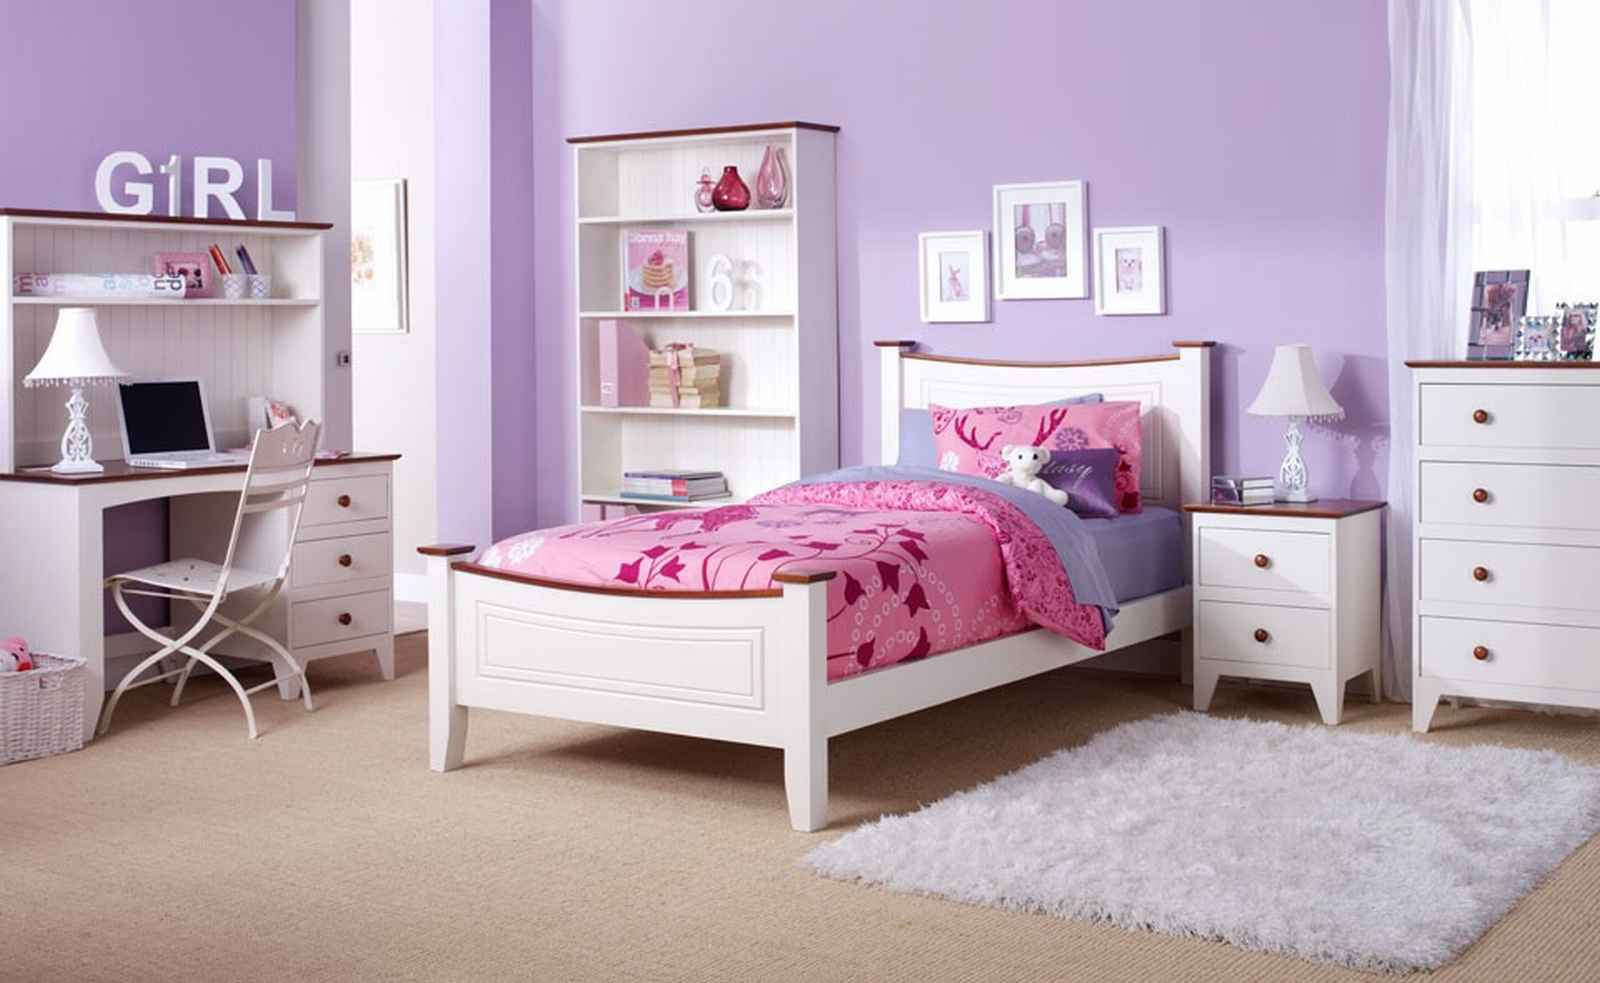 Four basic features for girl's bedroom sets